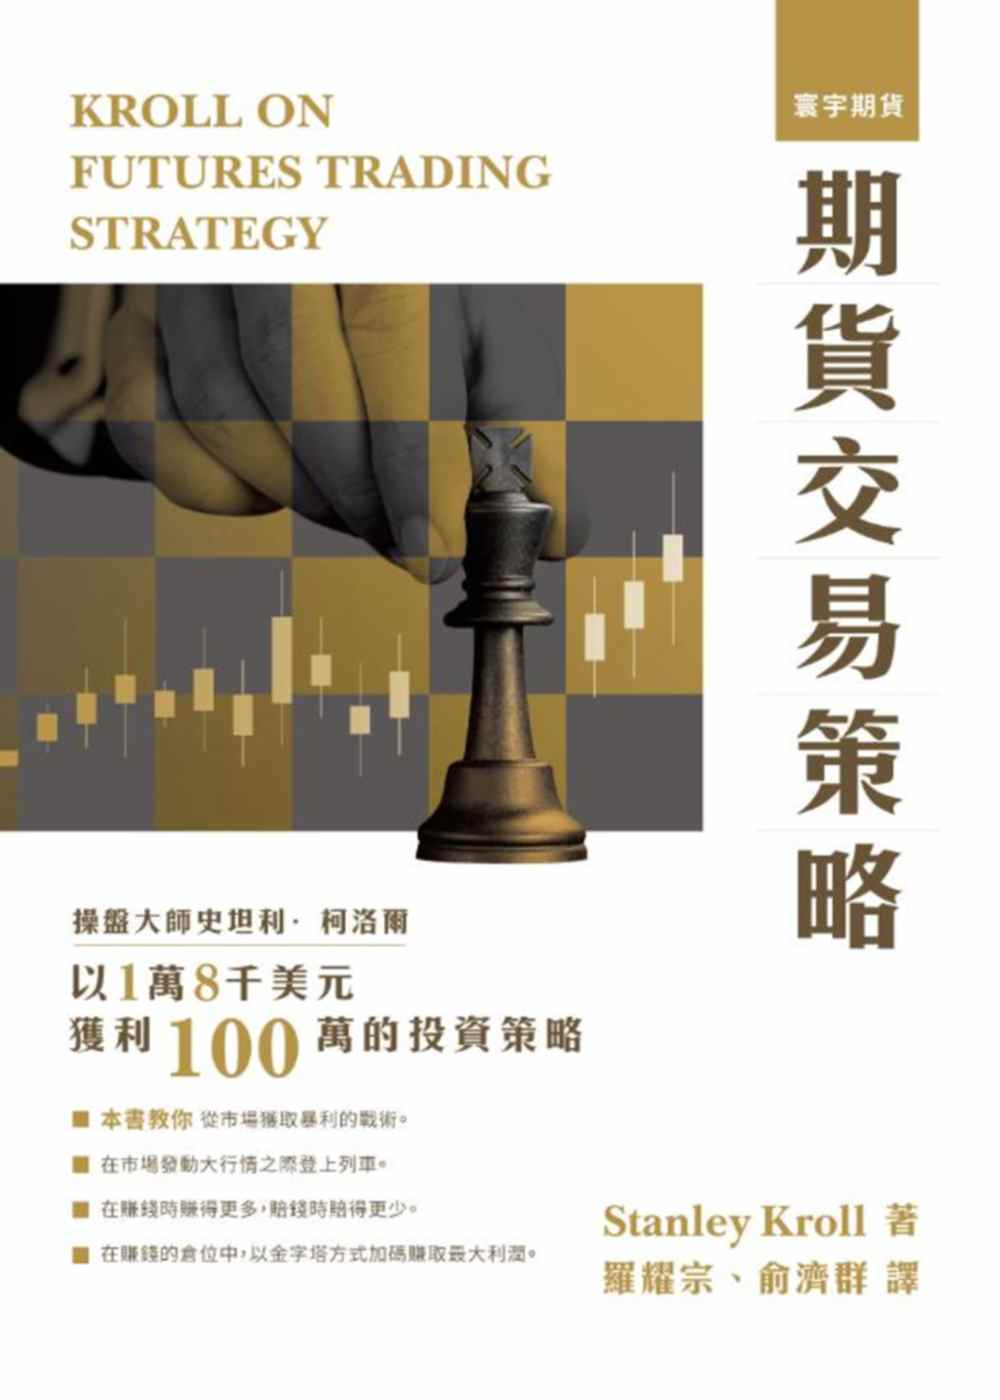 Stanley kroll futures trading strategy pdf